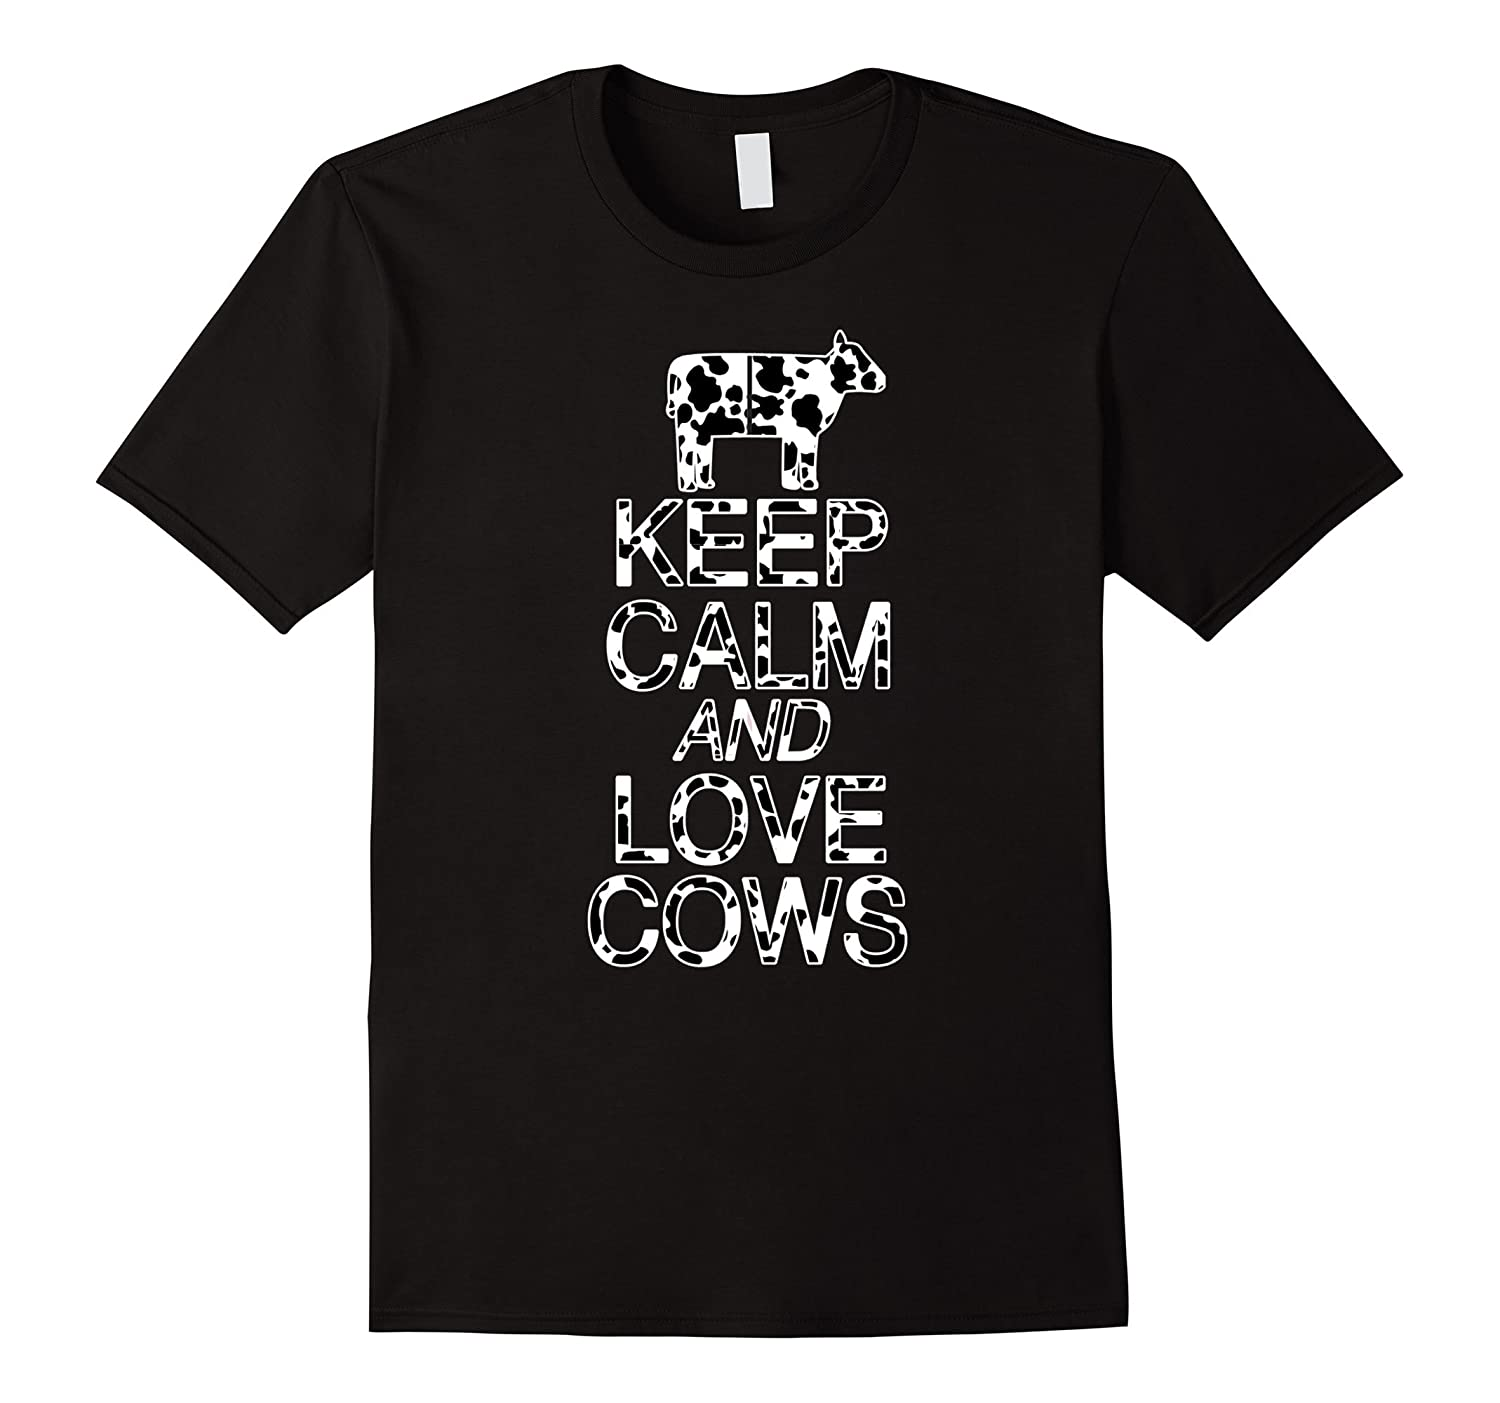 Keep calm and love cows t shirt black graphic design tee for T shirt design keep calm